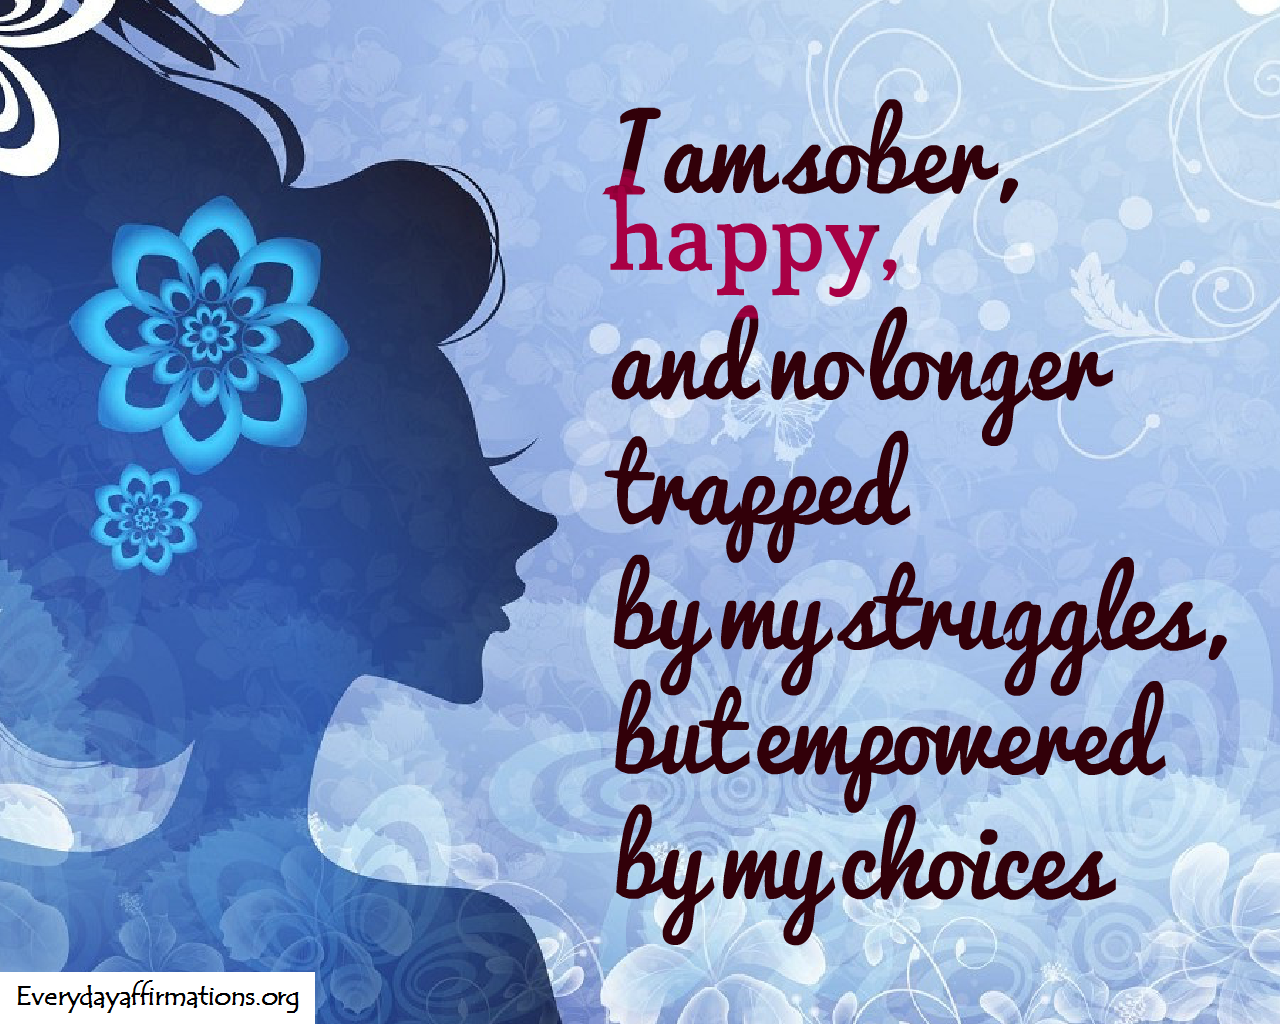 46 affirmations for women to assist through meaningful